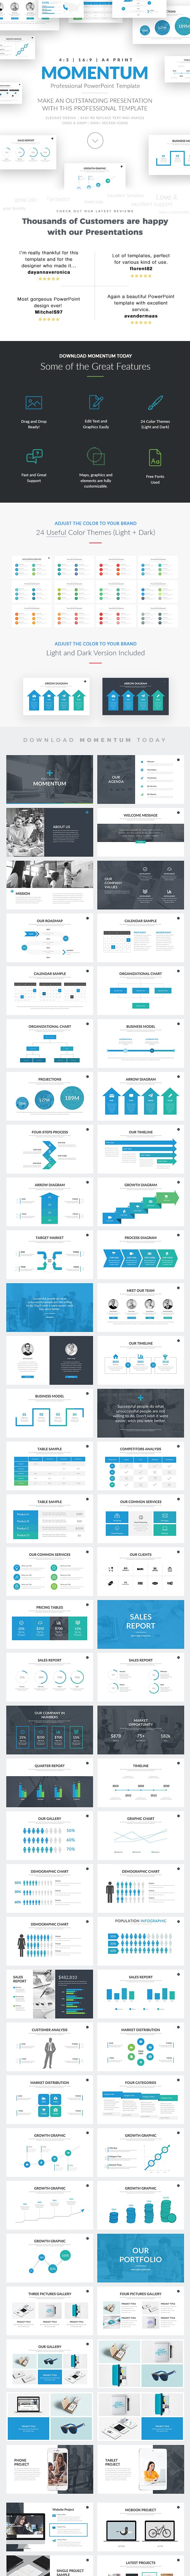 momentum professional business powerpoint template by louistwelve design